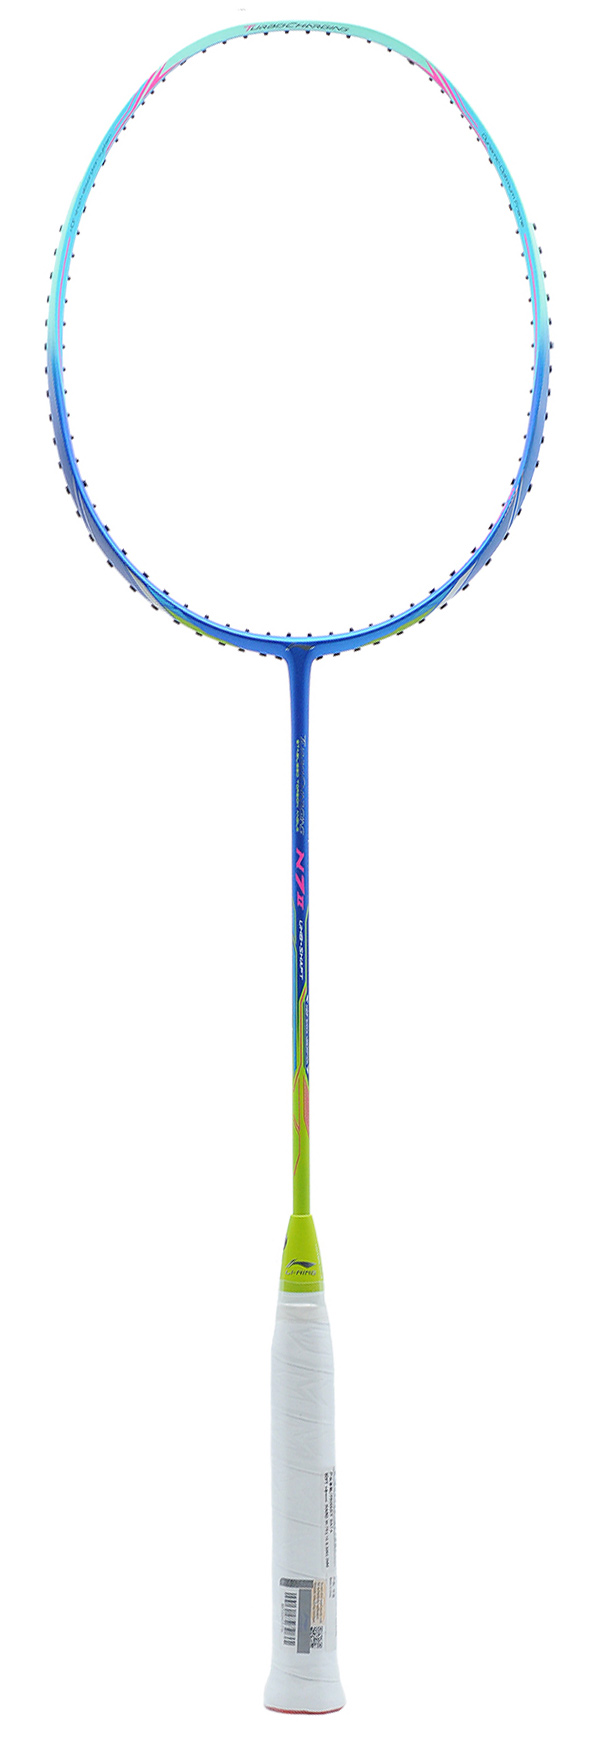 51feb6c0ada Lining N7 II Light Badminton Racket - 79g at Lowest Prices - Sportsuncle